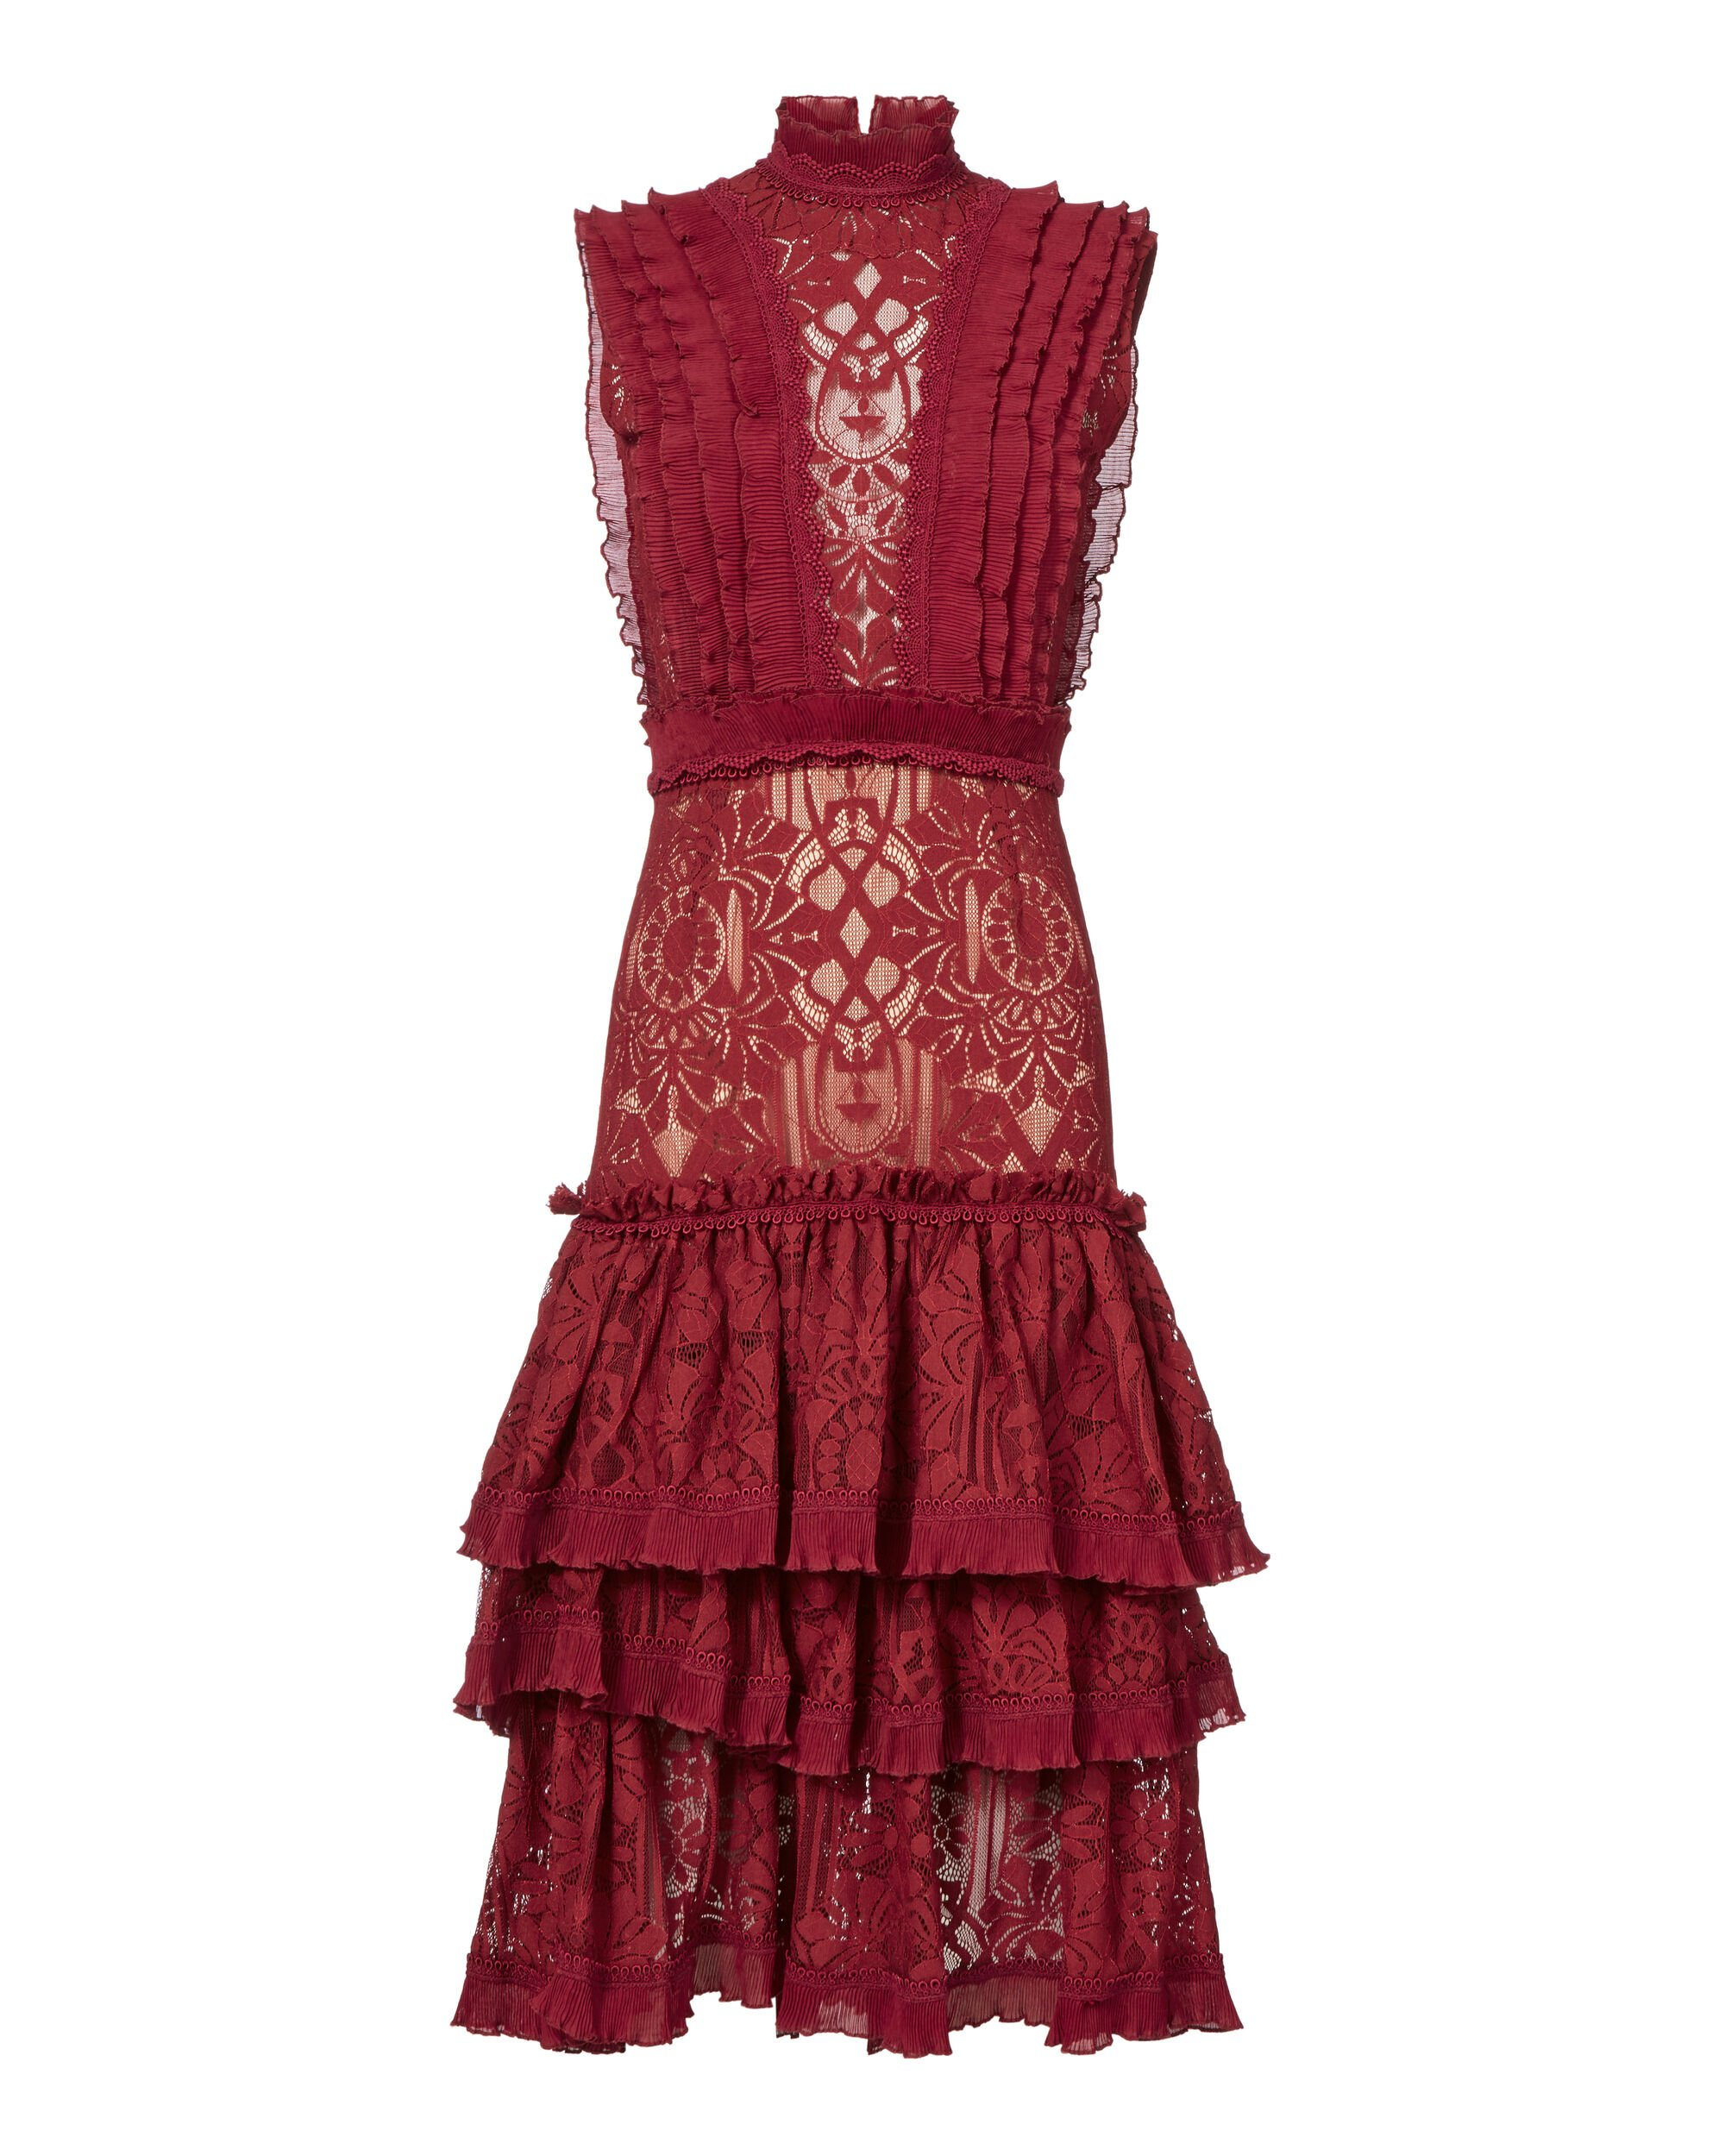 Tower Mesh Lace Ruffled Dress, RED-DRK, hi-res